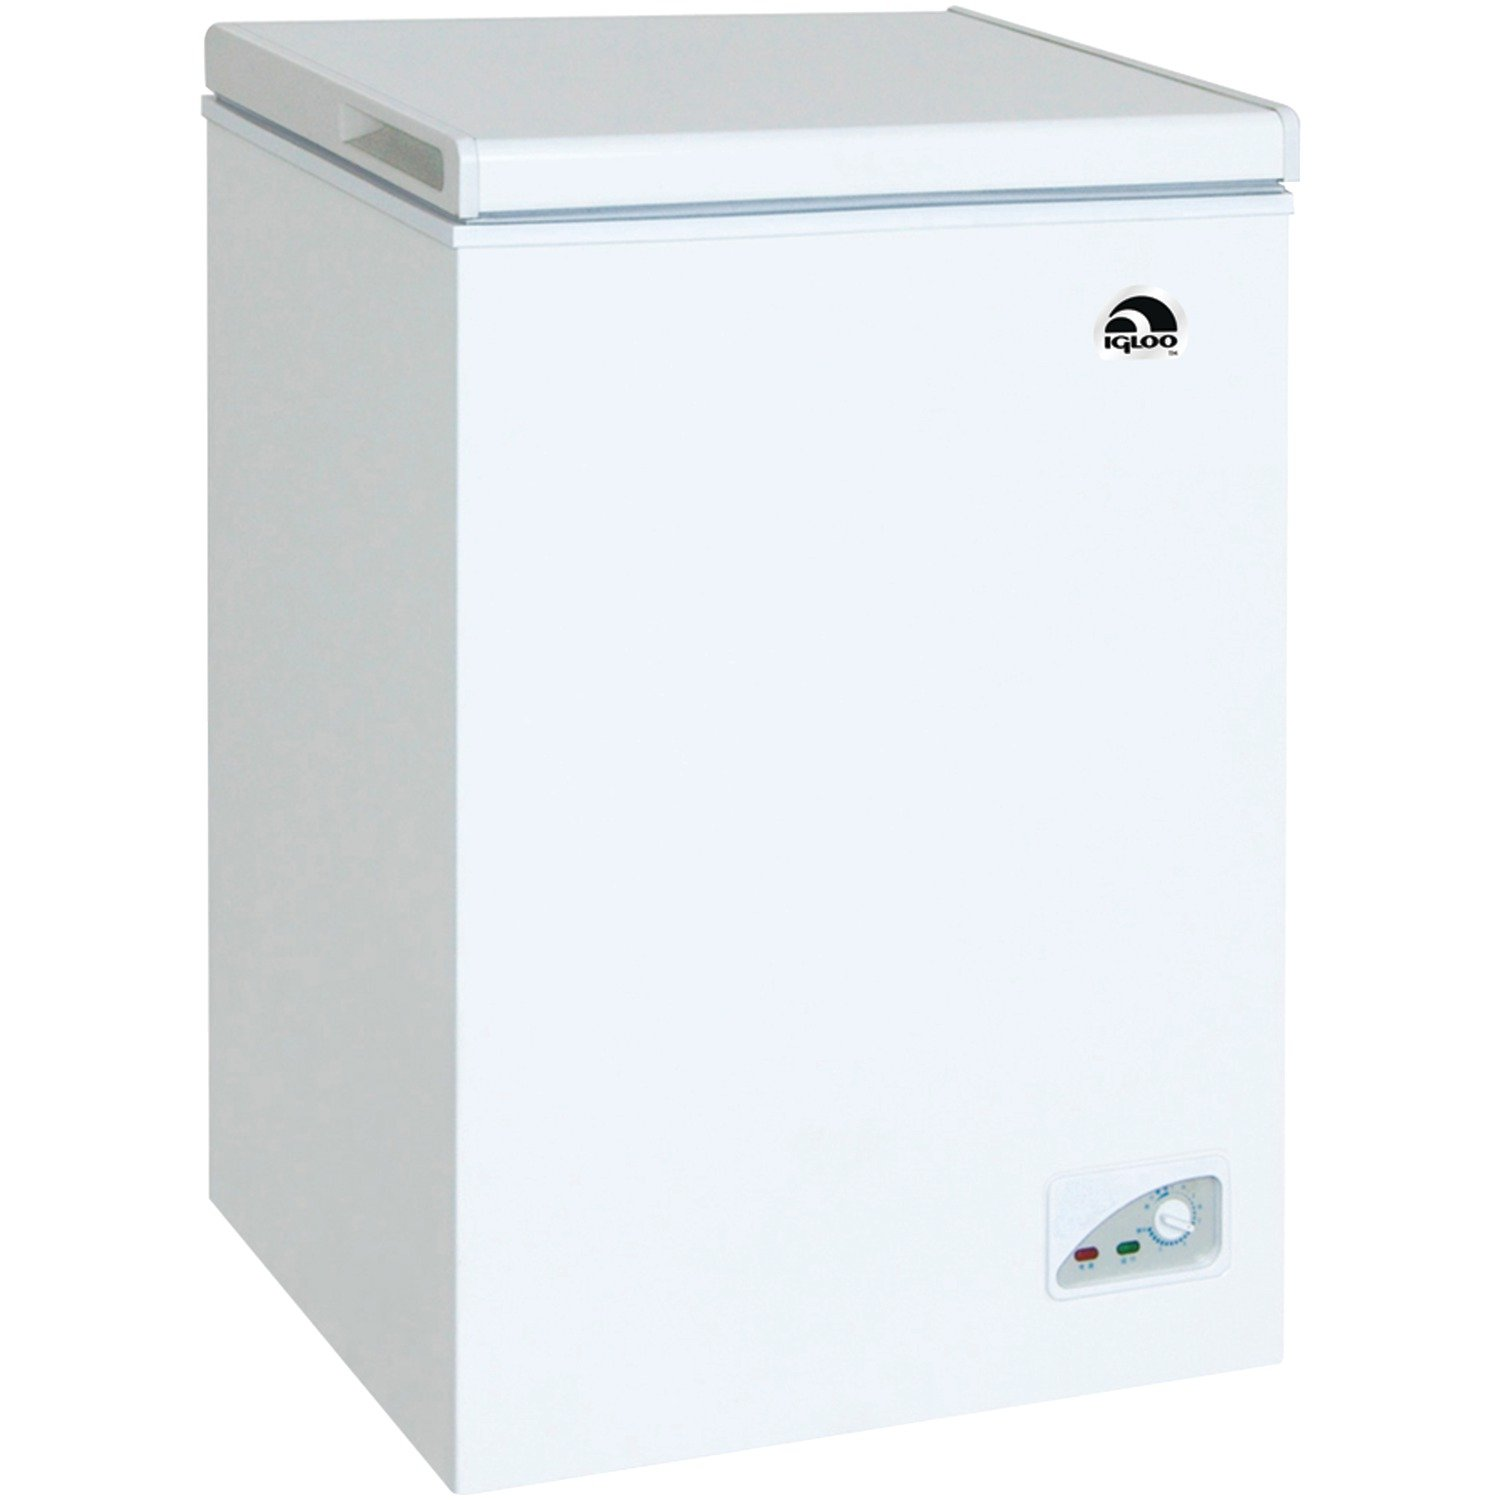 Amazoncom RCA 51 Cubic Foot Chest Freezer Kitchen Dining